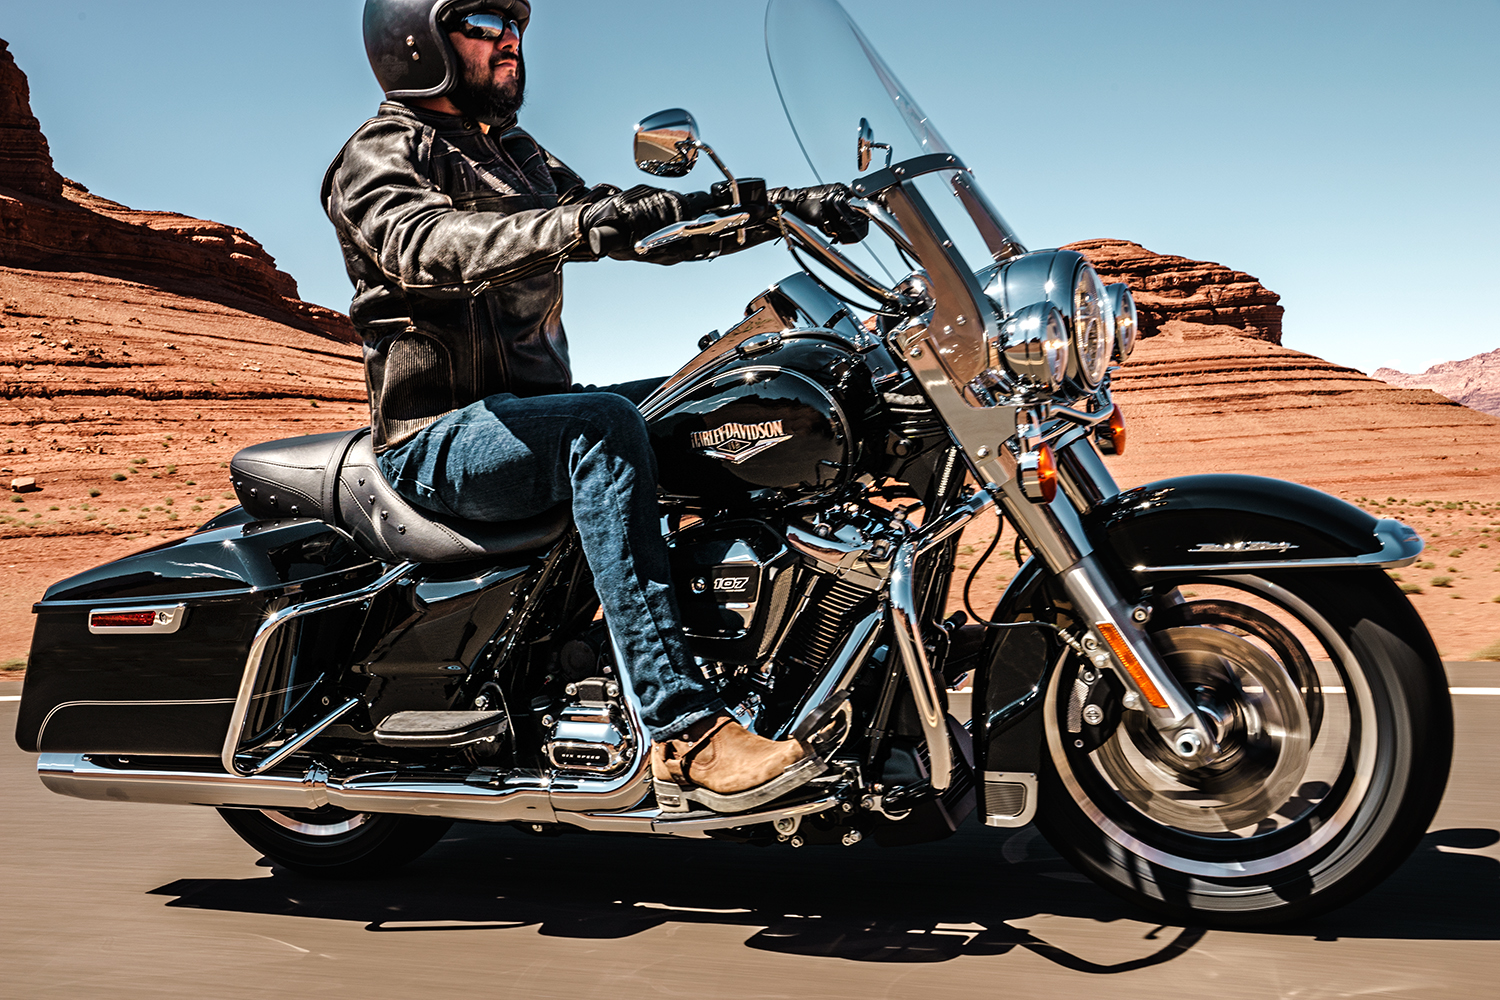 Harley Davidson Windshields >> Harley Davidson Windshield Upgrades